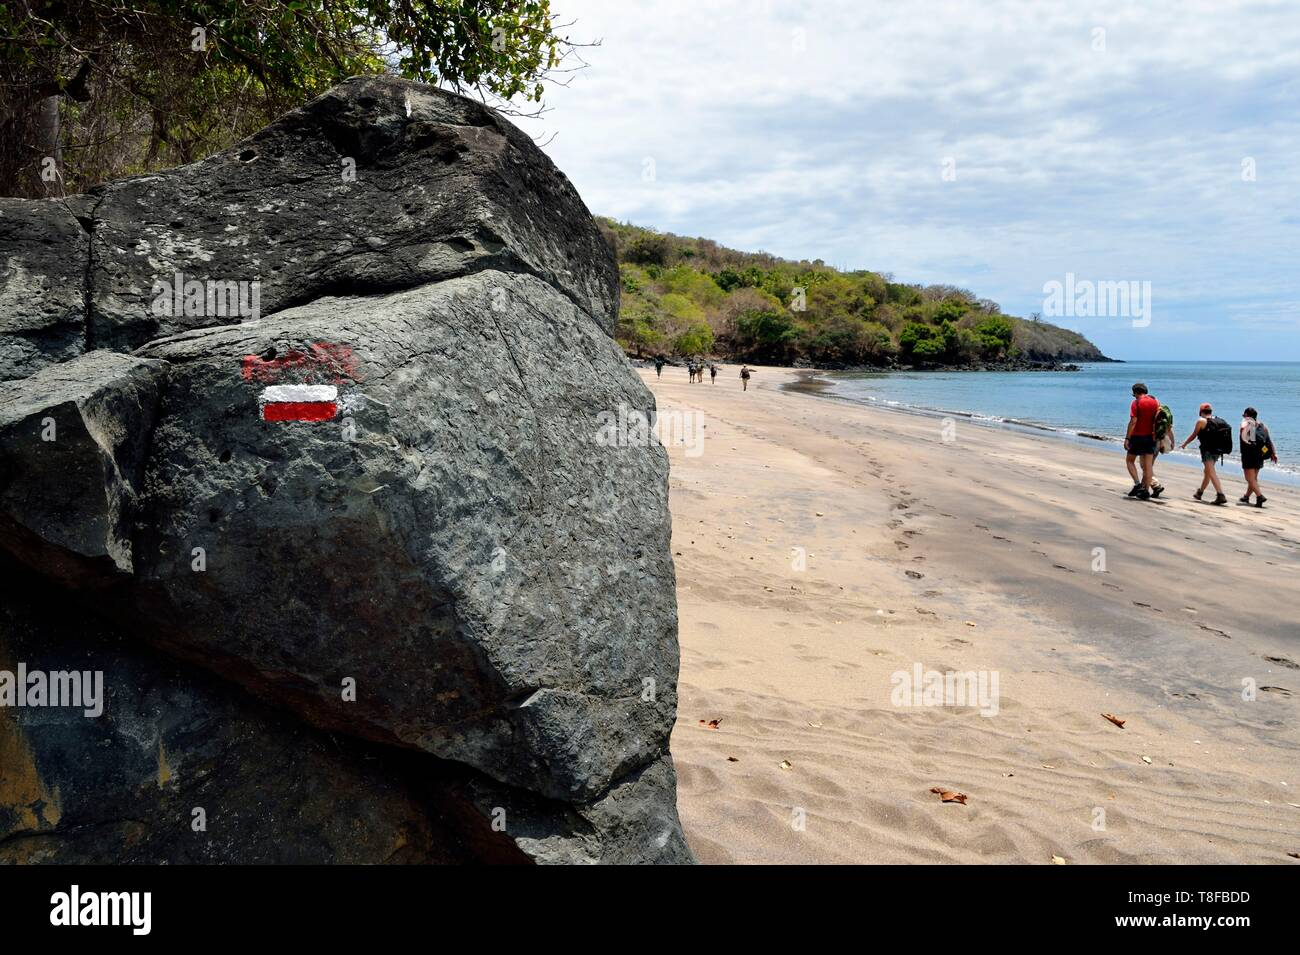 France, Mayotte island (French overseas department), Grande Terre, M'Tsamoudou, Saziley beach, hikers walking on the beach along the long distance hiking trail going around the island - Stock Image